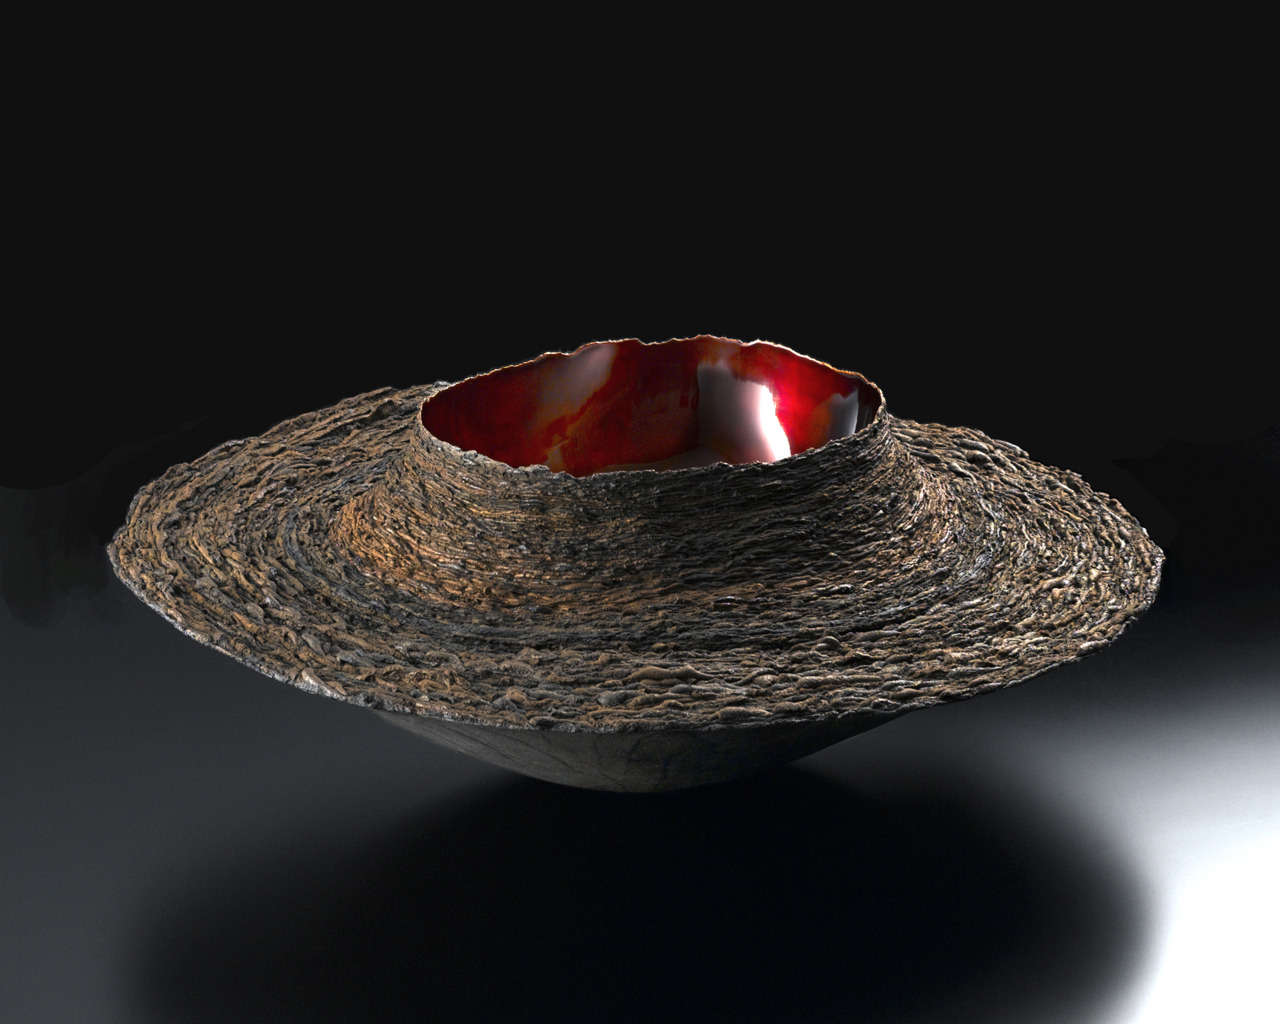 "ceramicsnow:  Fujita Toshiaki: Layered Form 1, 2004, Urushi, gold leaf, earth powder, 10"" x 10"" x 10"" (h) / Keiko Gallery - Japanese artists"